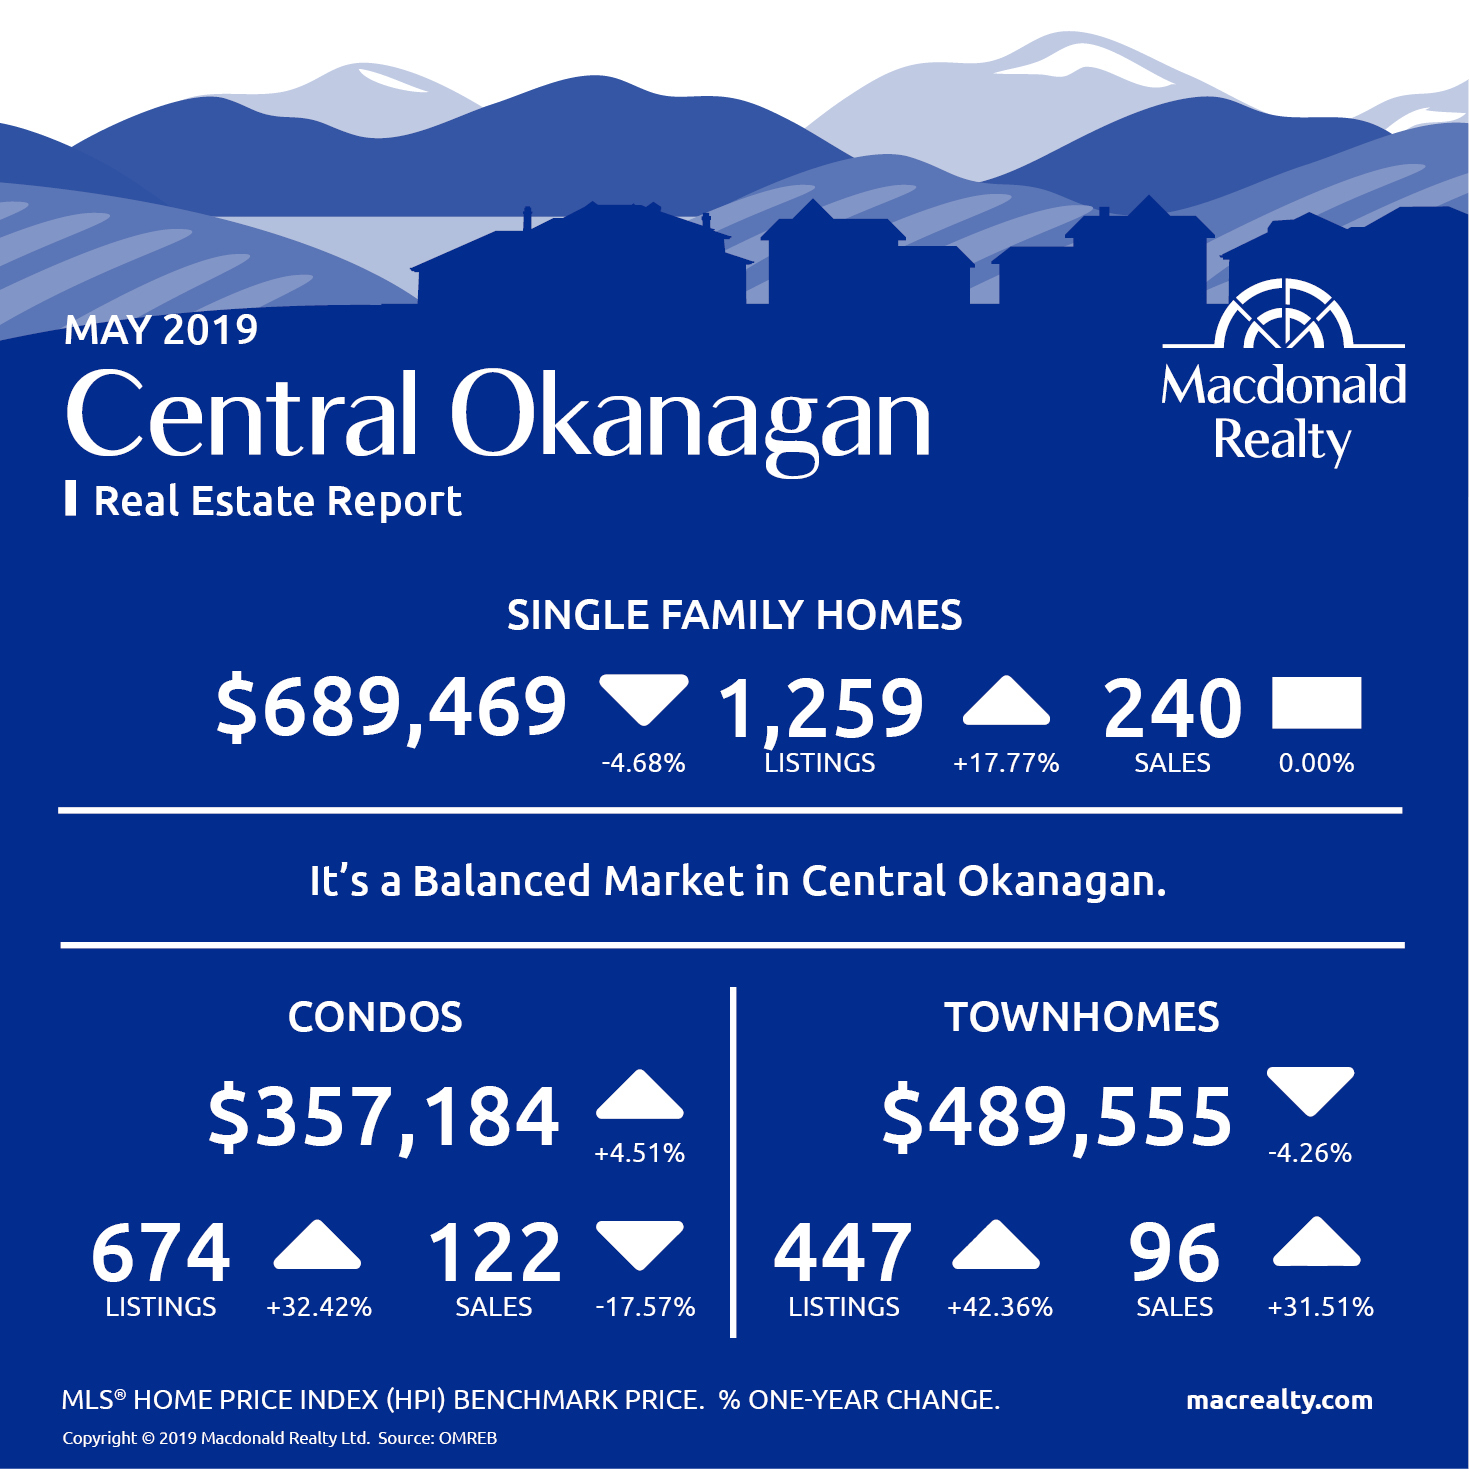 Okanagan Real Estate Market Statistics – May 2019